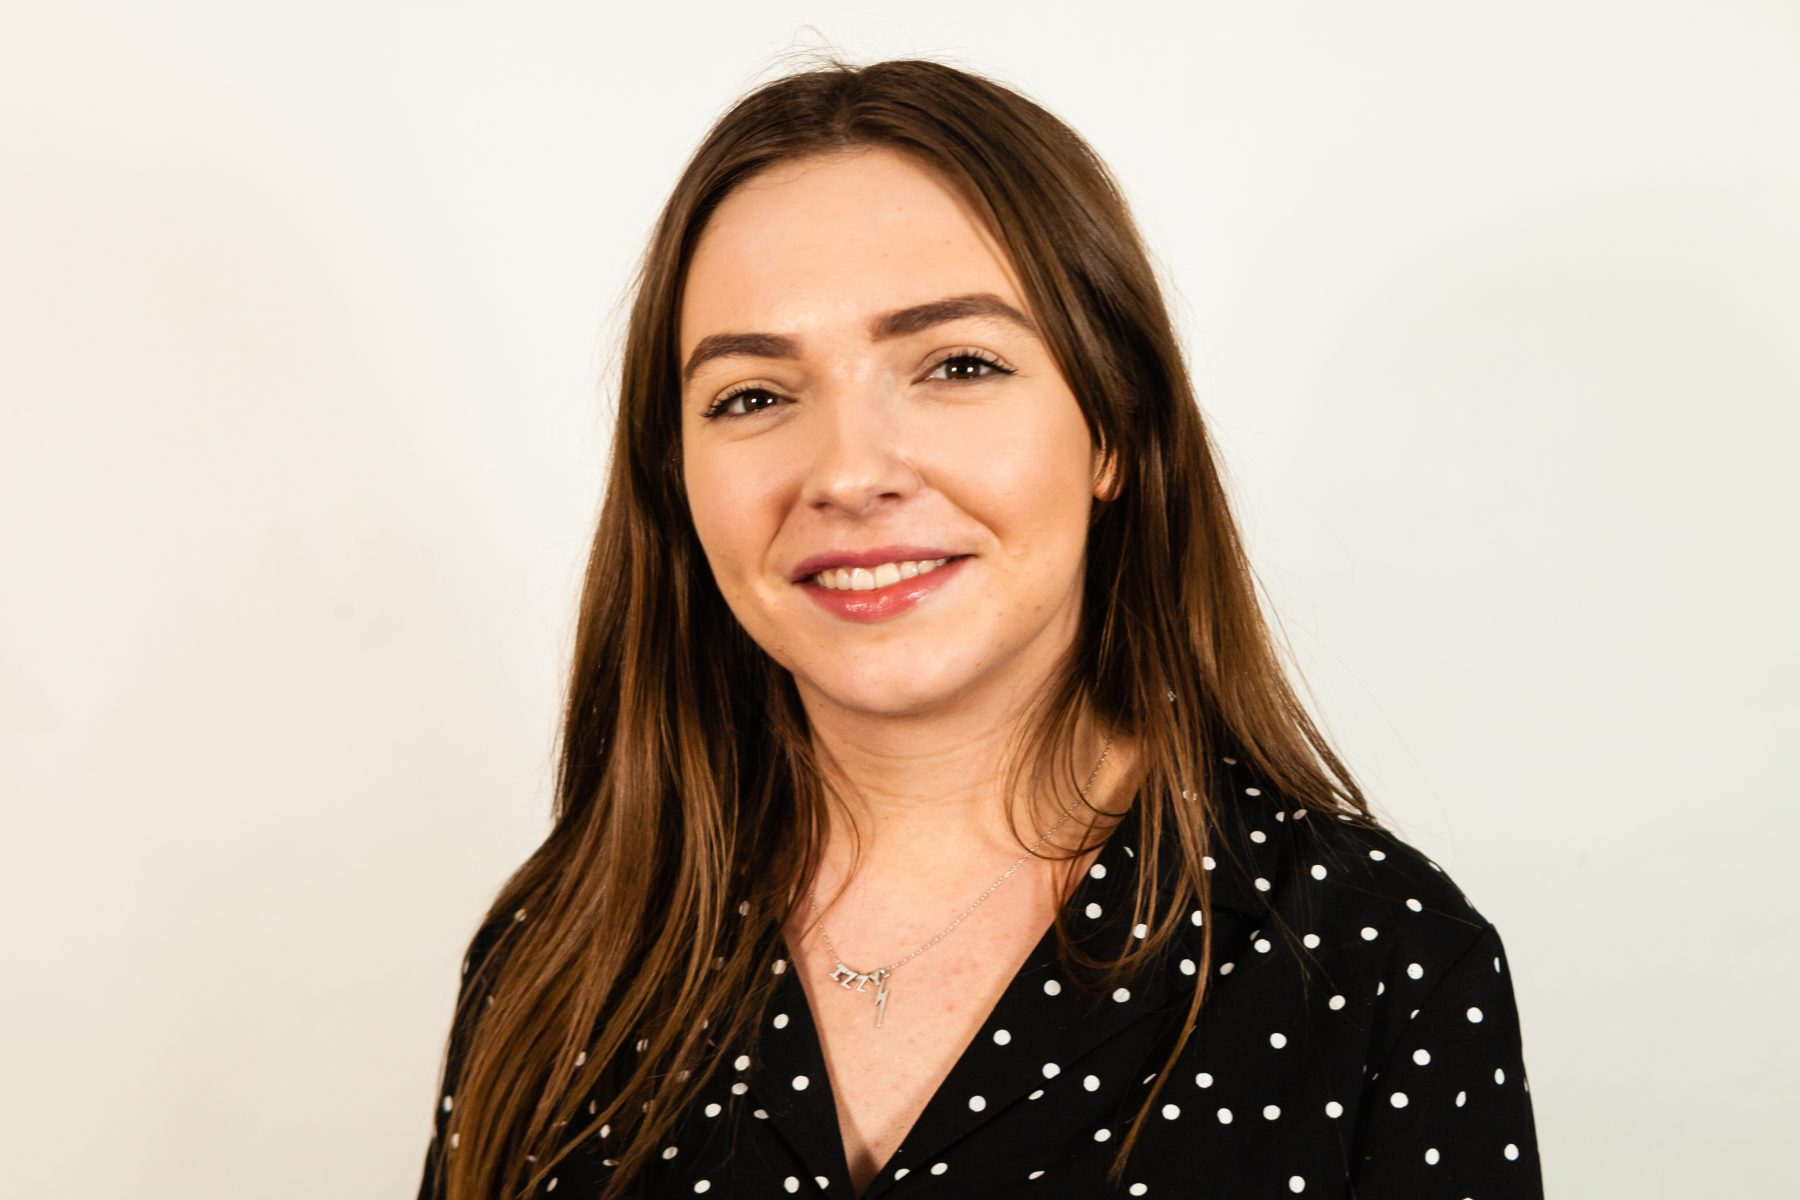 Izzy Stiven is a member of the award-winning PR team at Holyrood PR agency in Edinburgh, Scotland